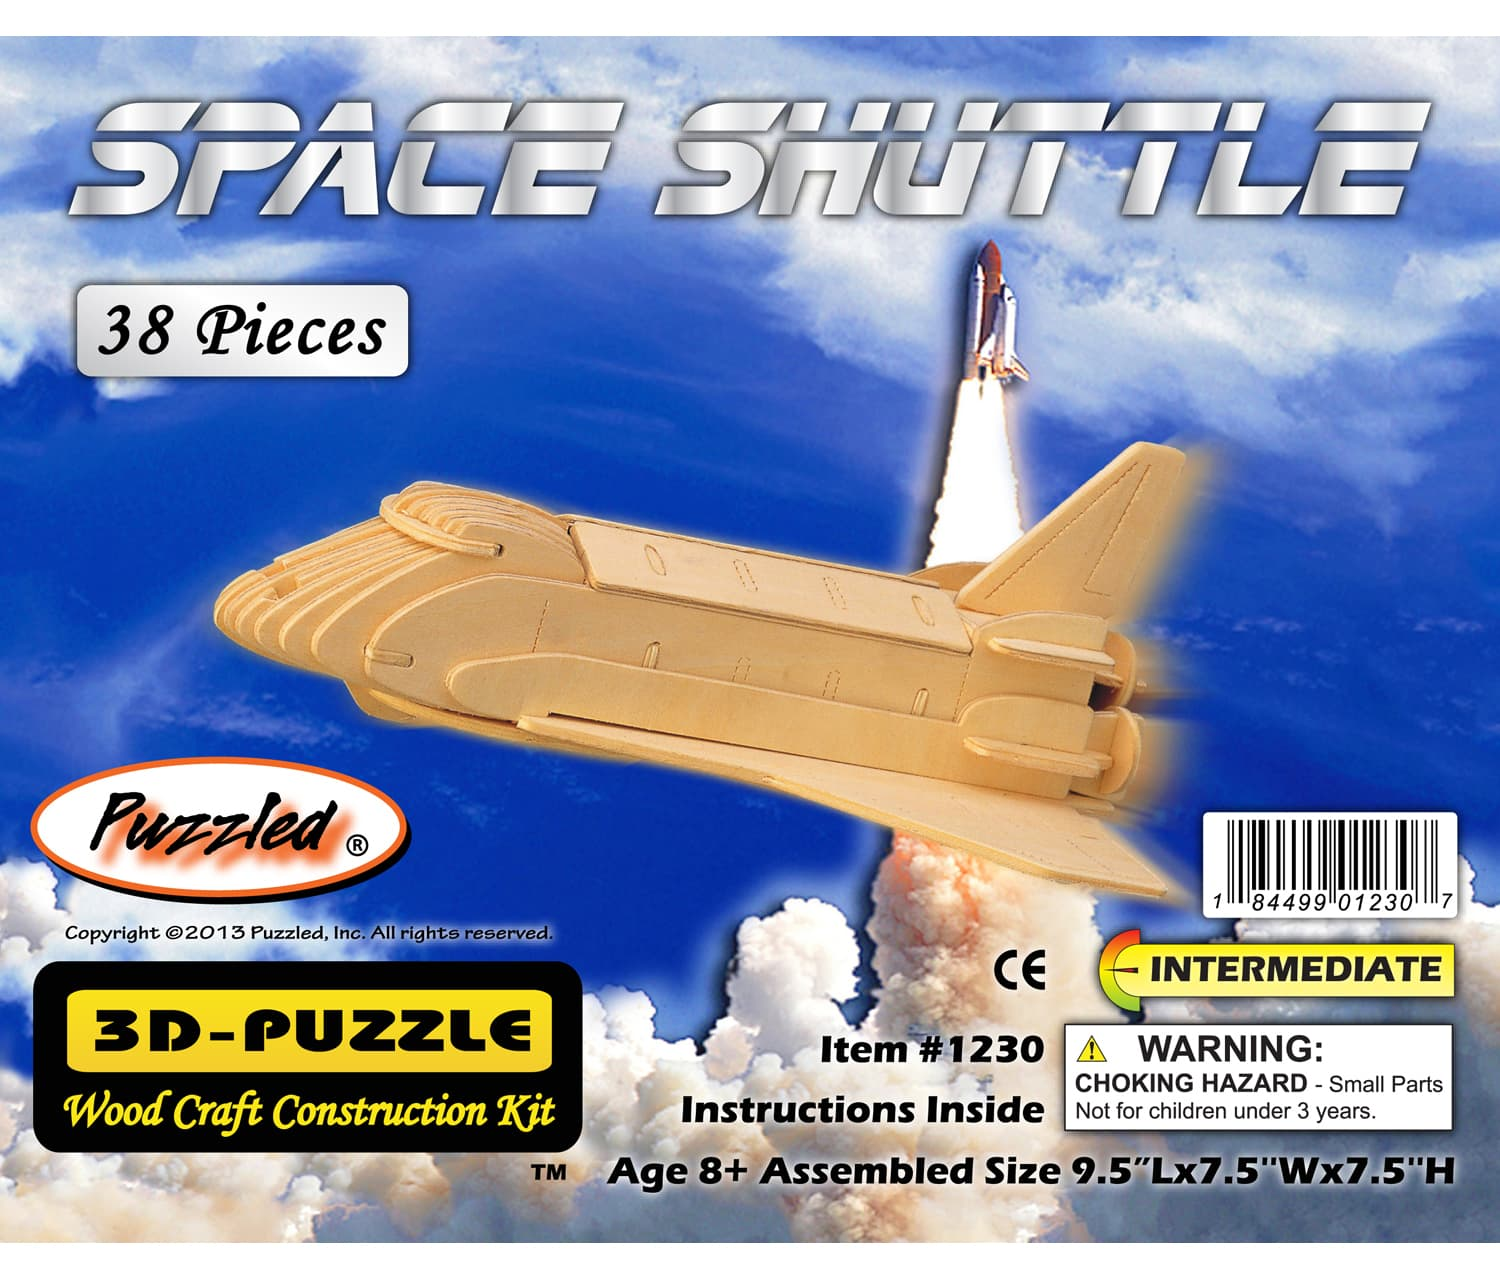 Space Shuttle 3D Wooden Puzzle,1230